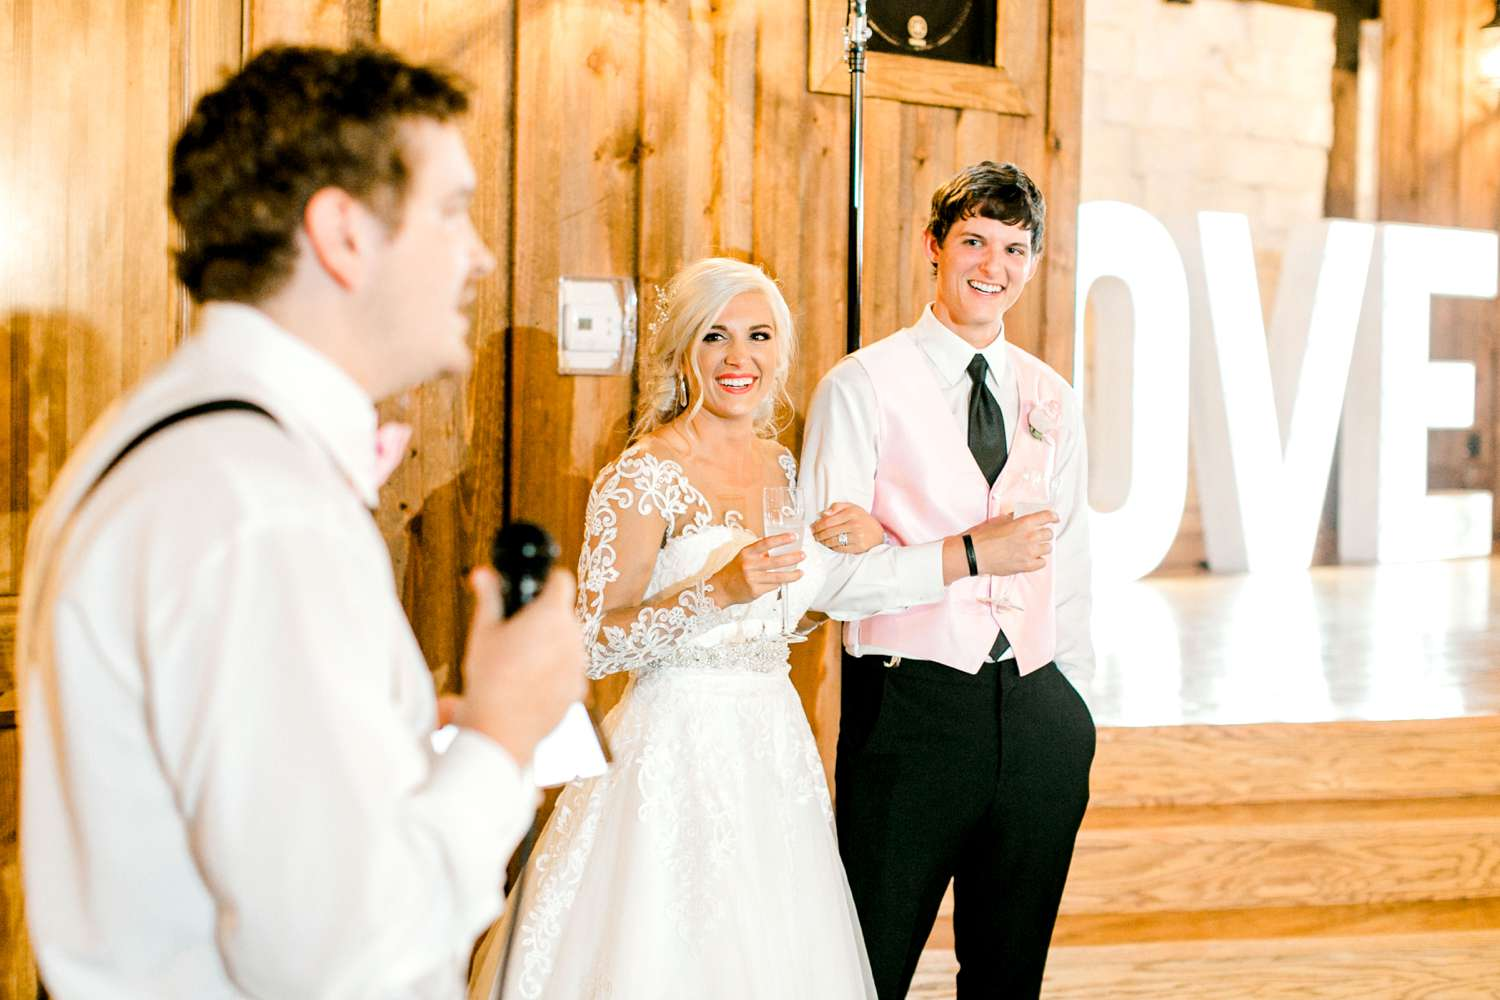 JESSICA+LYLE+NEEL+THE_SPRINGS_EVENTS_WEDDING_OKLAHOMA_ALLEEJ_PHOTOGRAPHER_0152.jpg